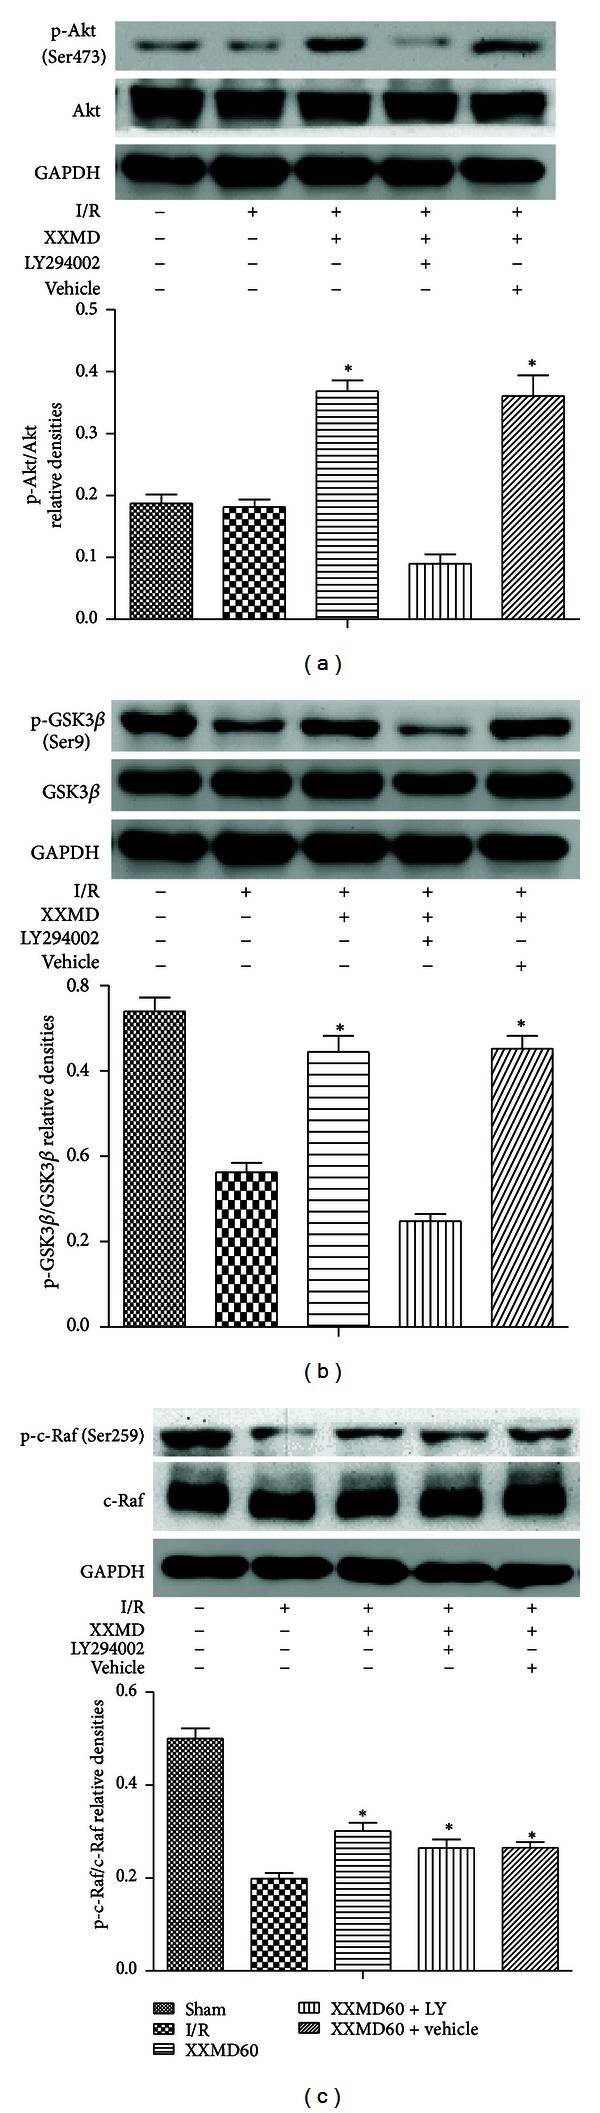 Western blot analysis of phosphorylation levels of Akt, GSK3 β , and c-Raf at 24 h after reperfusion. (a) Representative protein bands for p-Akt (Ser473), total Akt. p-Akt (Ser473) expression levels significantly were decreased at 24 h after reperfusion, whereas XXMD treatment enhanced p-Akt (Ser473) levels and the effects could be partly reversed by PI3K inhibitor. No changes in Akt were detected in rats of different groups. GAPDH was used to show equal protein loading of each lane. (b) Representative protein bands for p-GSK3 β (Ser9), total GSK3 β . A decrease in p-GSK3 β (Ser9) level was observed in the peripheral area of ischemia after reperfusion and the levels of p-GSK3 β (Ser9) in the XXMD60 group were higher than those in the I/R group. However, inhibition of PI3K using LY294002 abolished the increase. No changes in GSK3 β were observed in rats of different groups. (c) Representative protein bands for p-c-Raf, total c-Raf. Although p-c-Raf expression levels significantly were decreased at 24 h after reperfusion, XXMD preserved the levels of p-c-Raf. Notably, LY294002 did not significantly block the effect of XXMD on p-c-Raf. No changes in c-Raf were detected in rats of different groups. Data are reported as the means ± SEM. n = 5; * P